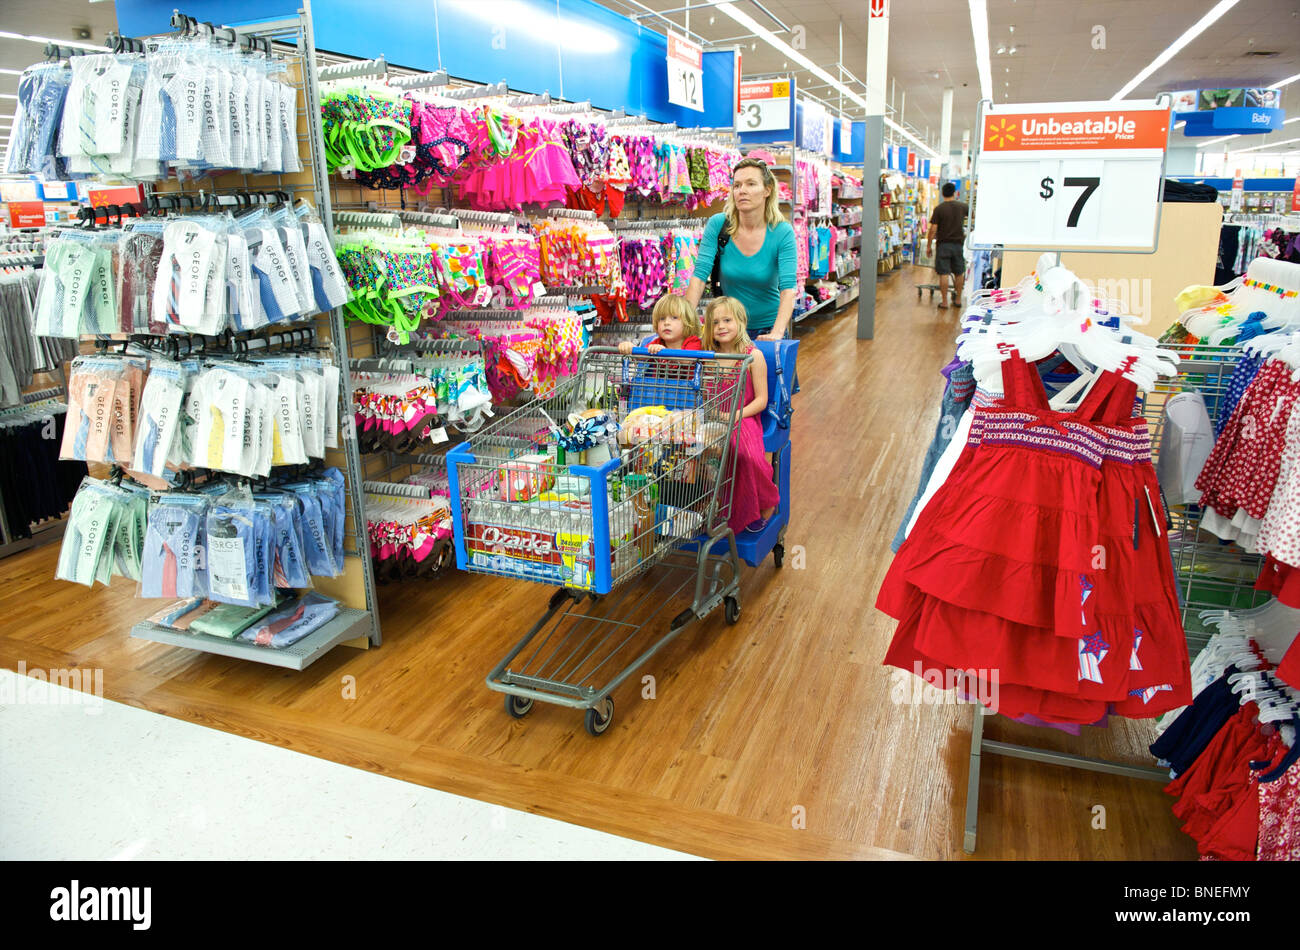 Woman Shopping With Her Children In Store In Texas, USA